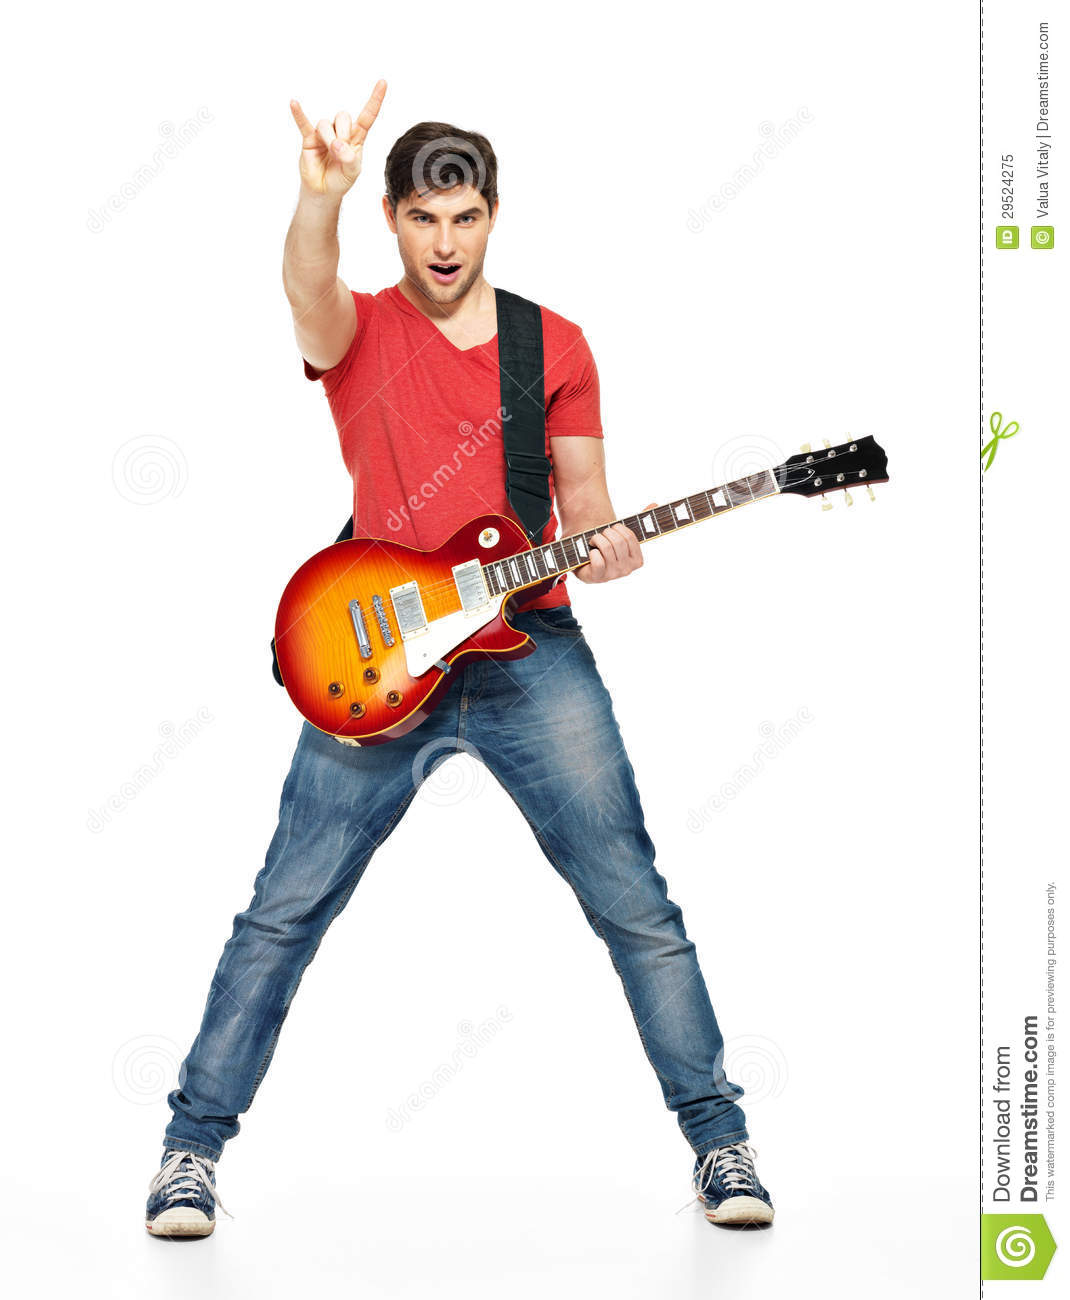 Guitarist Man Plays On The Electric Guitar Royalty Free Stock Photo ...